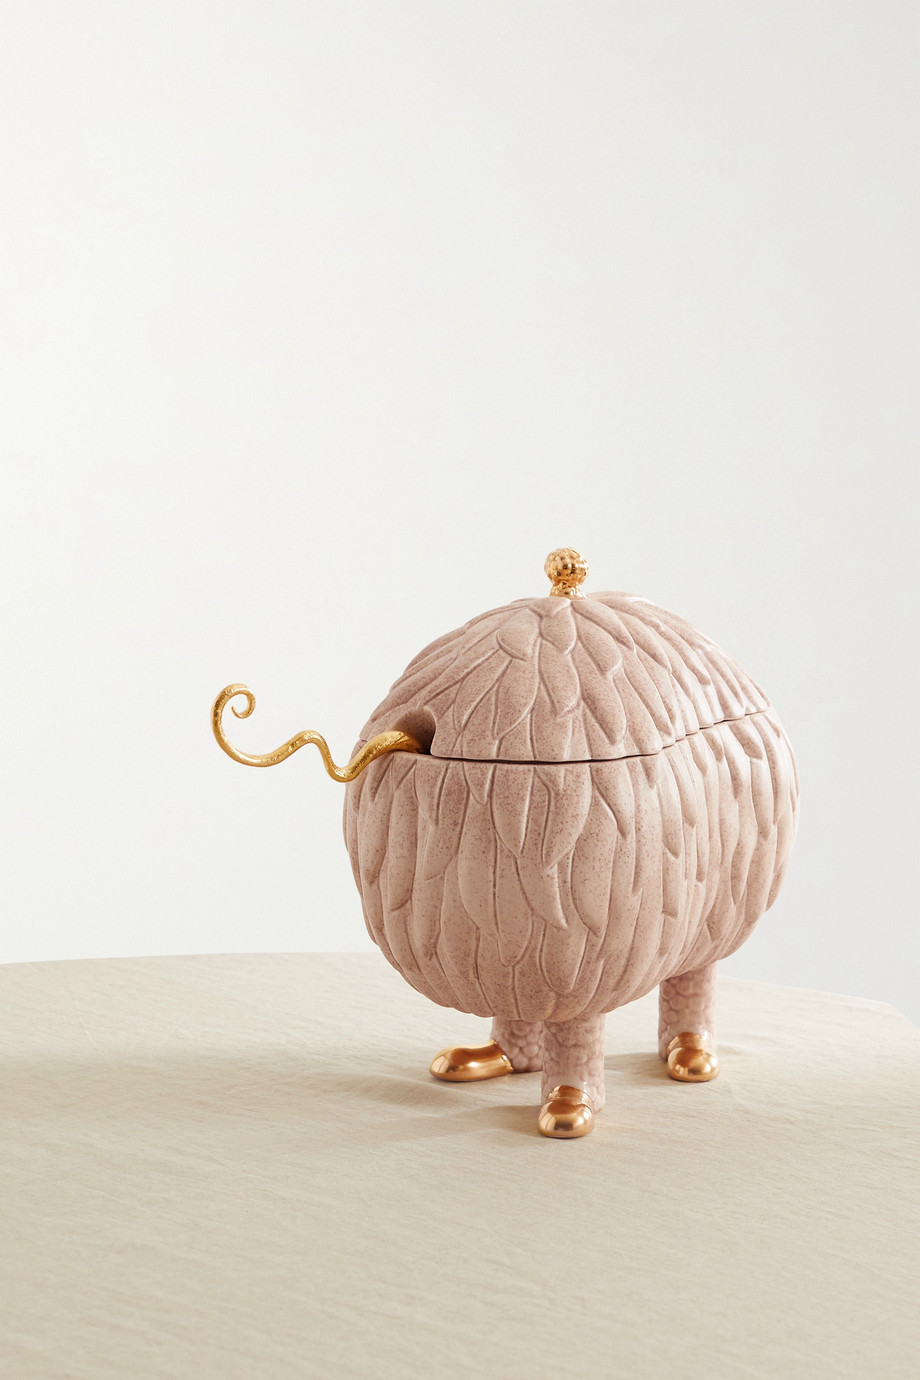 L'OBJET + Haas Brothers Lukas Soup Monster gold-plated earthenware tureen set